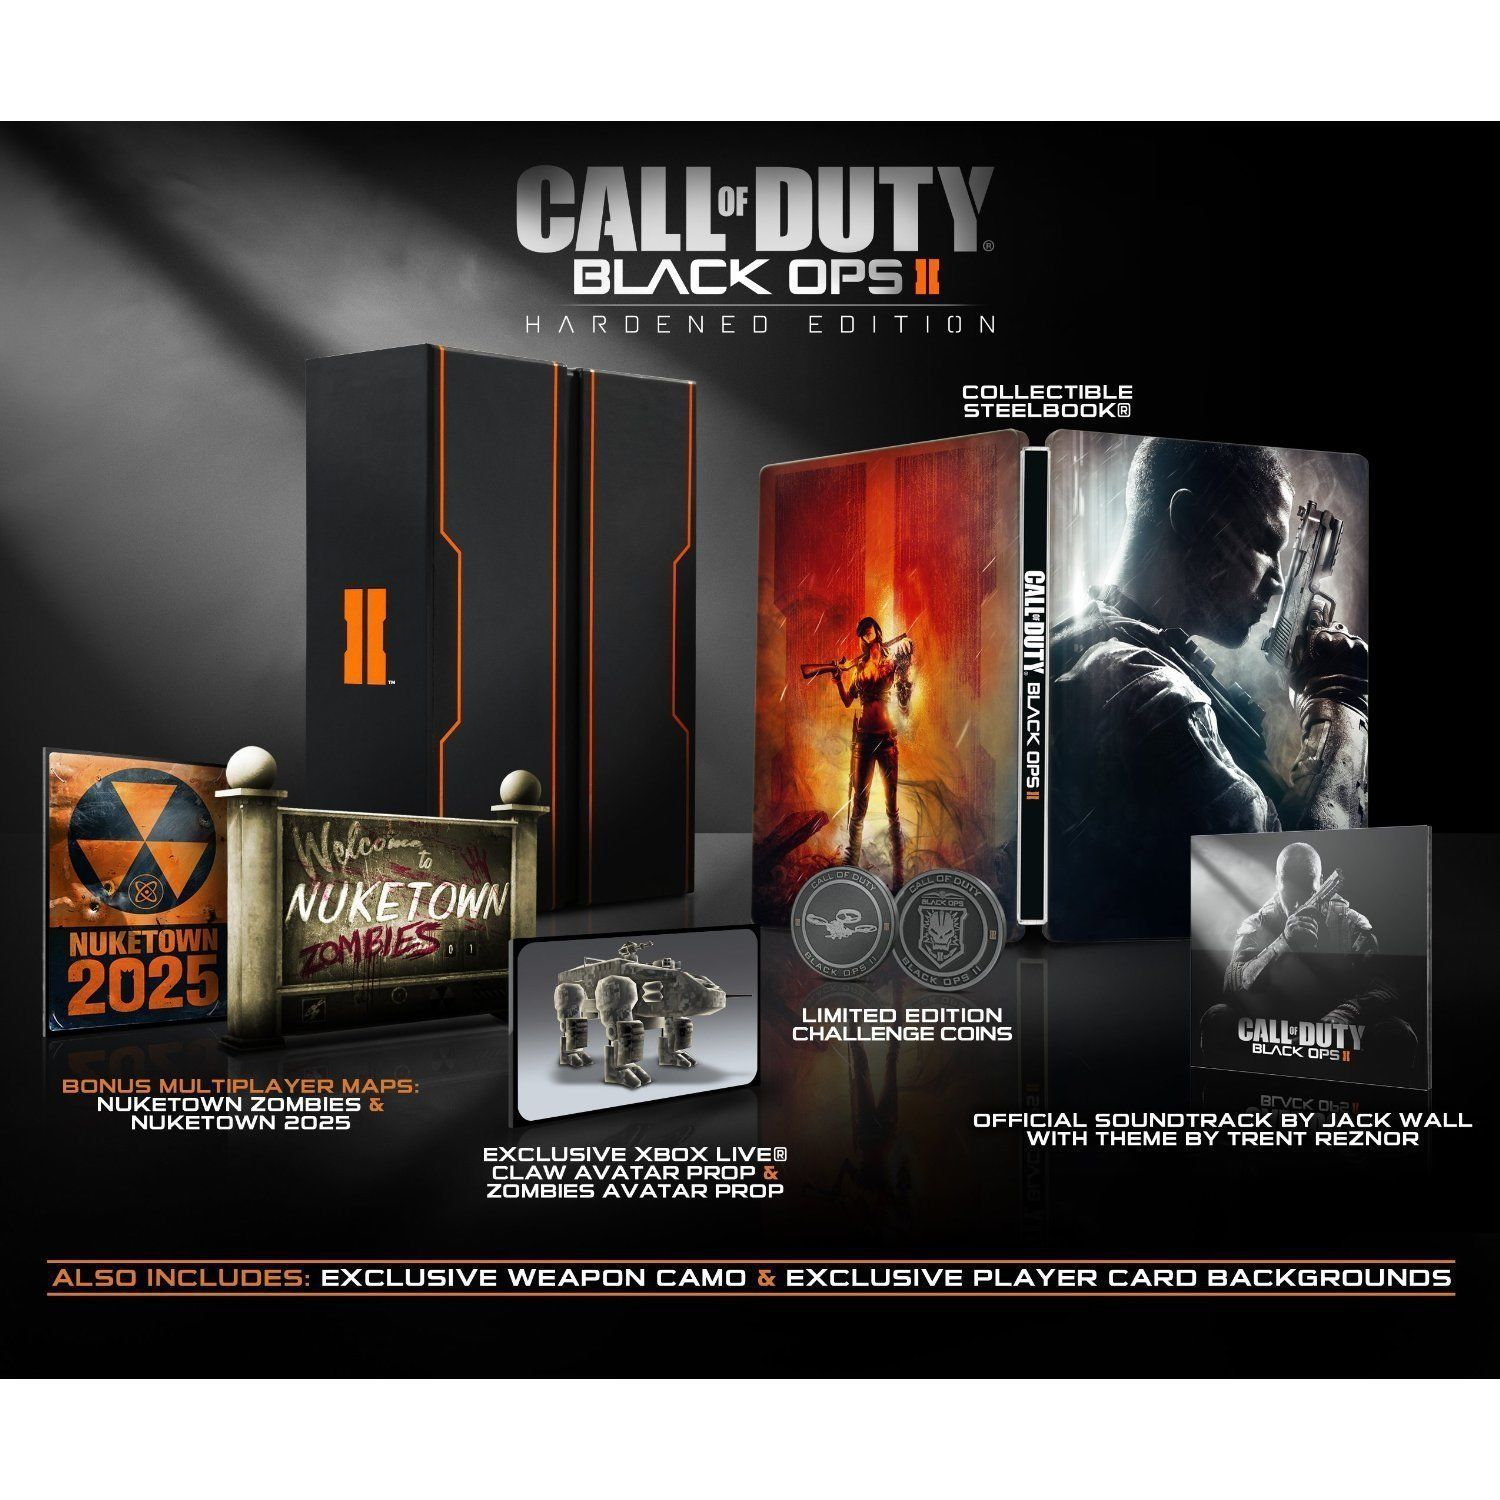 BRAND NEW Call of Duty: Black Ops II 2 Hardened Edition for PS3